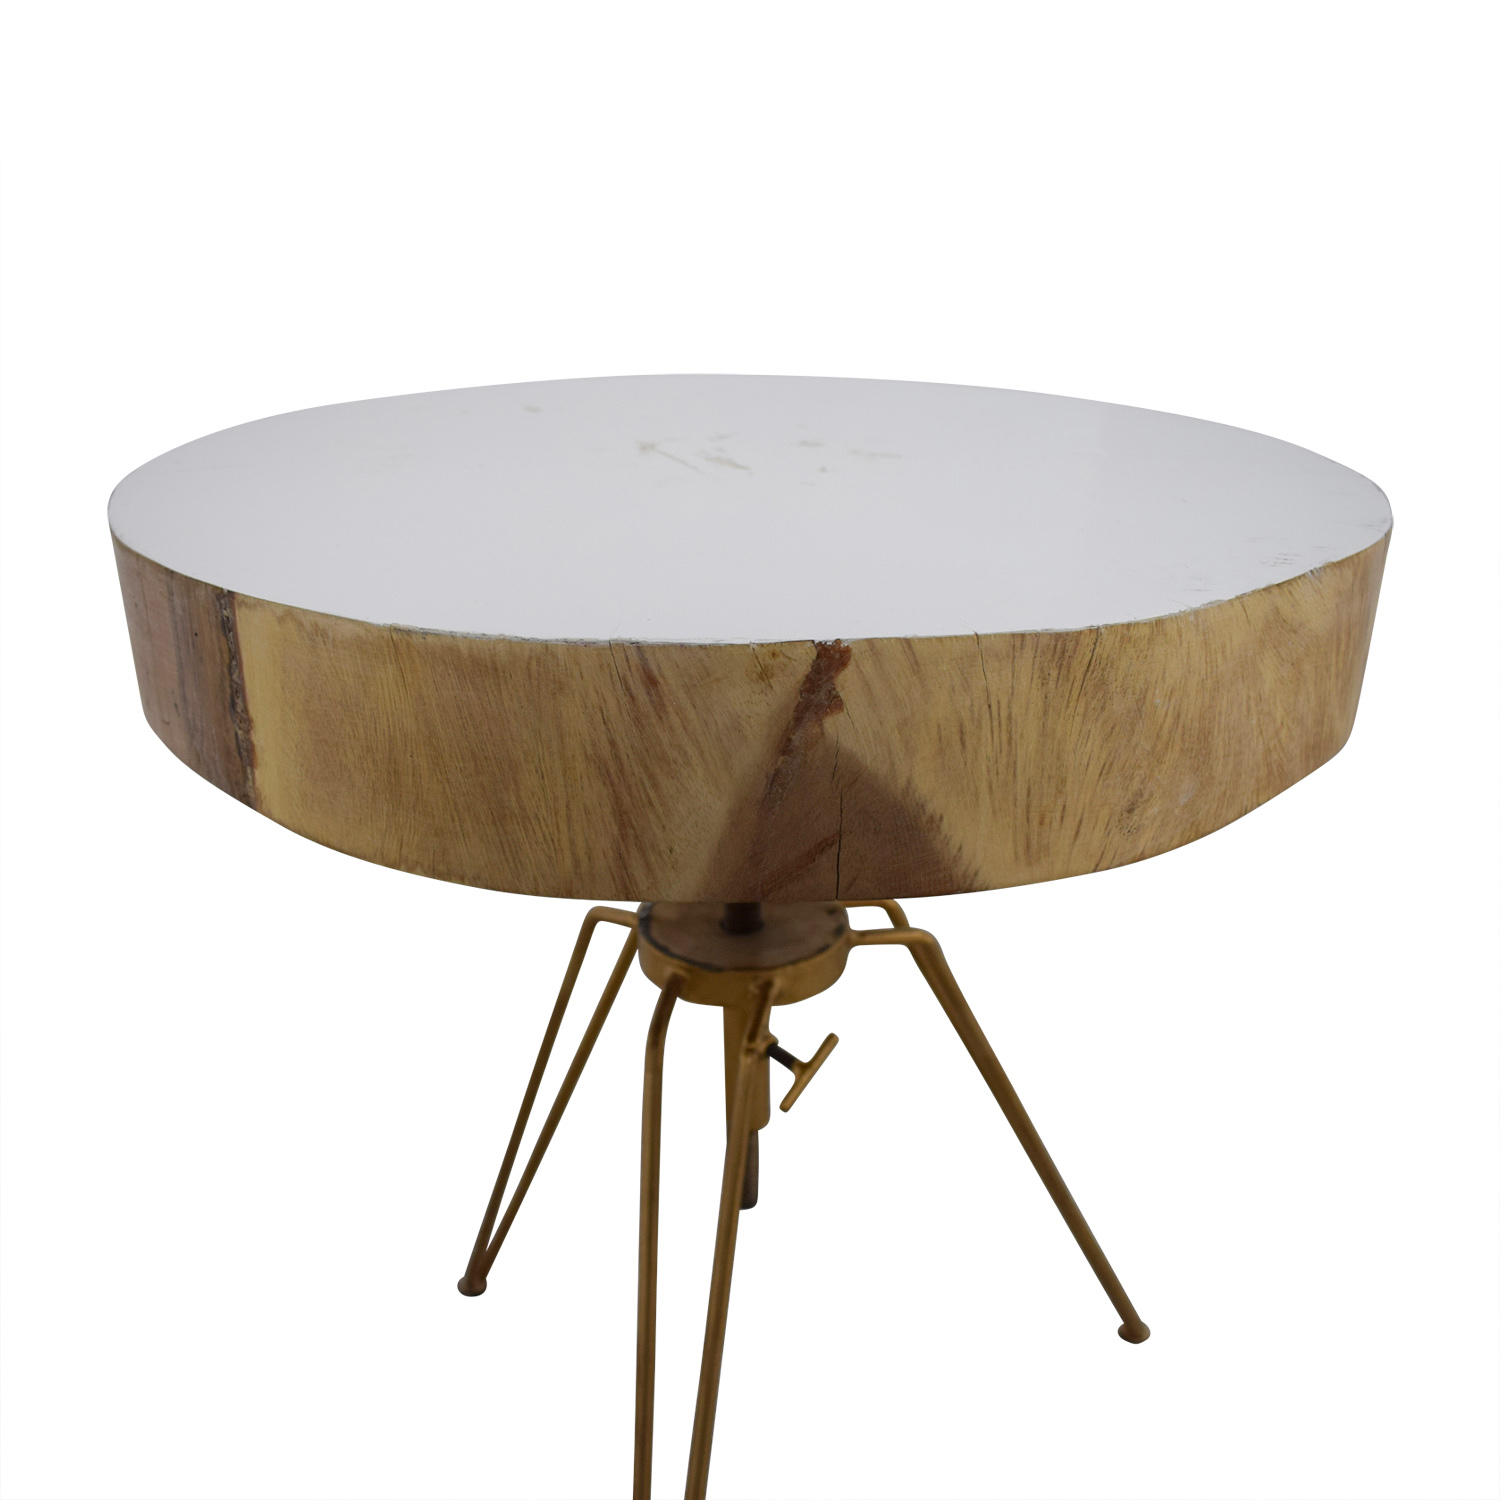 Biarritz Suar Biarritz Suar White Wood and Bronze Iron Accent Table nyc